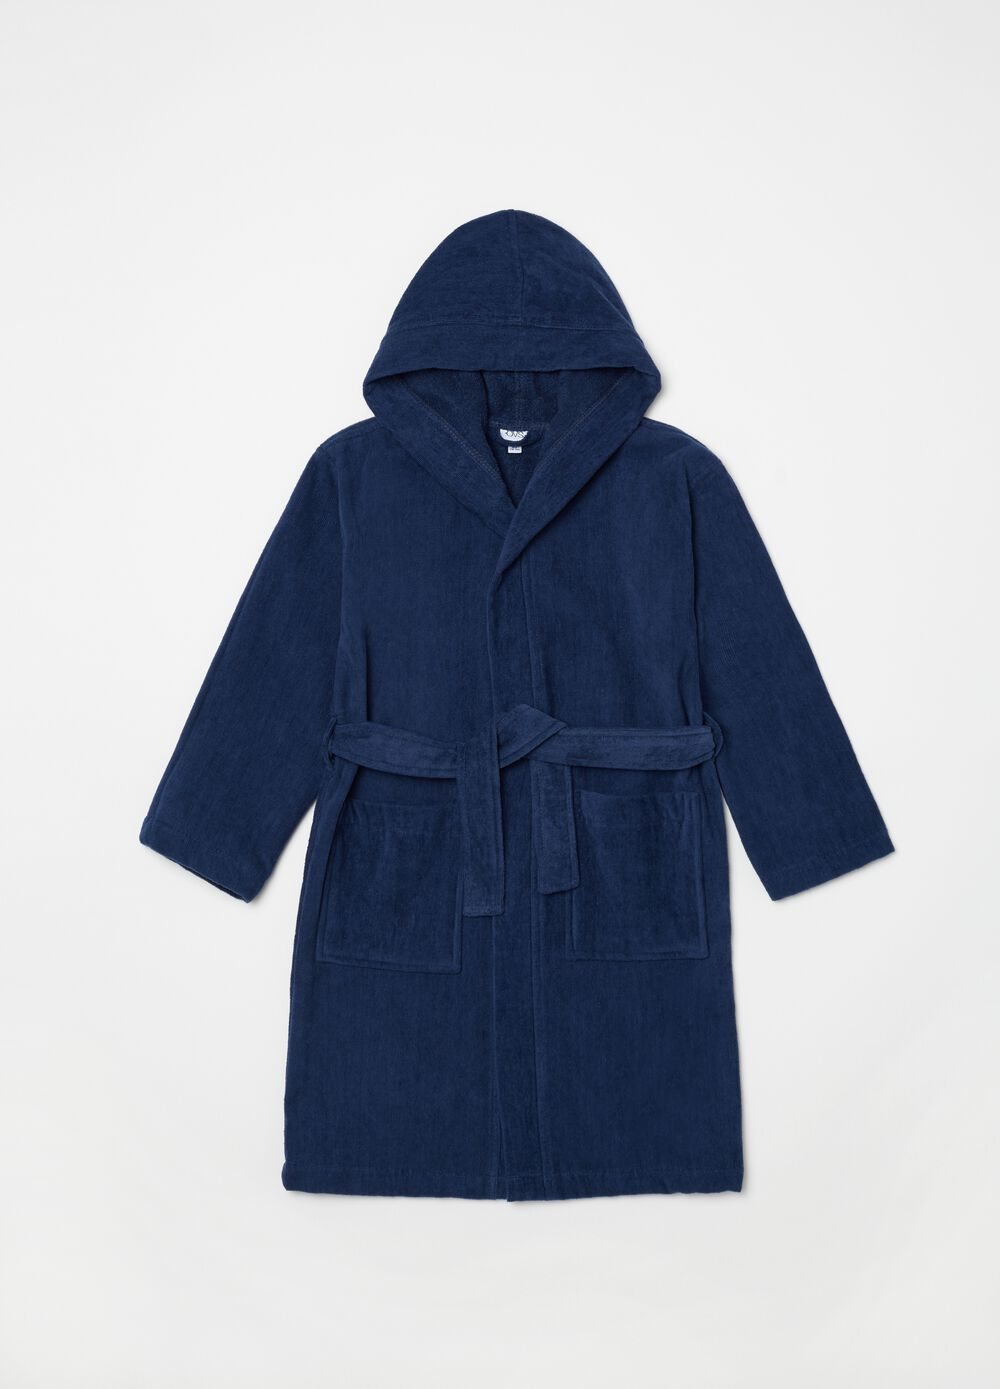 100% cotton robe with pockets